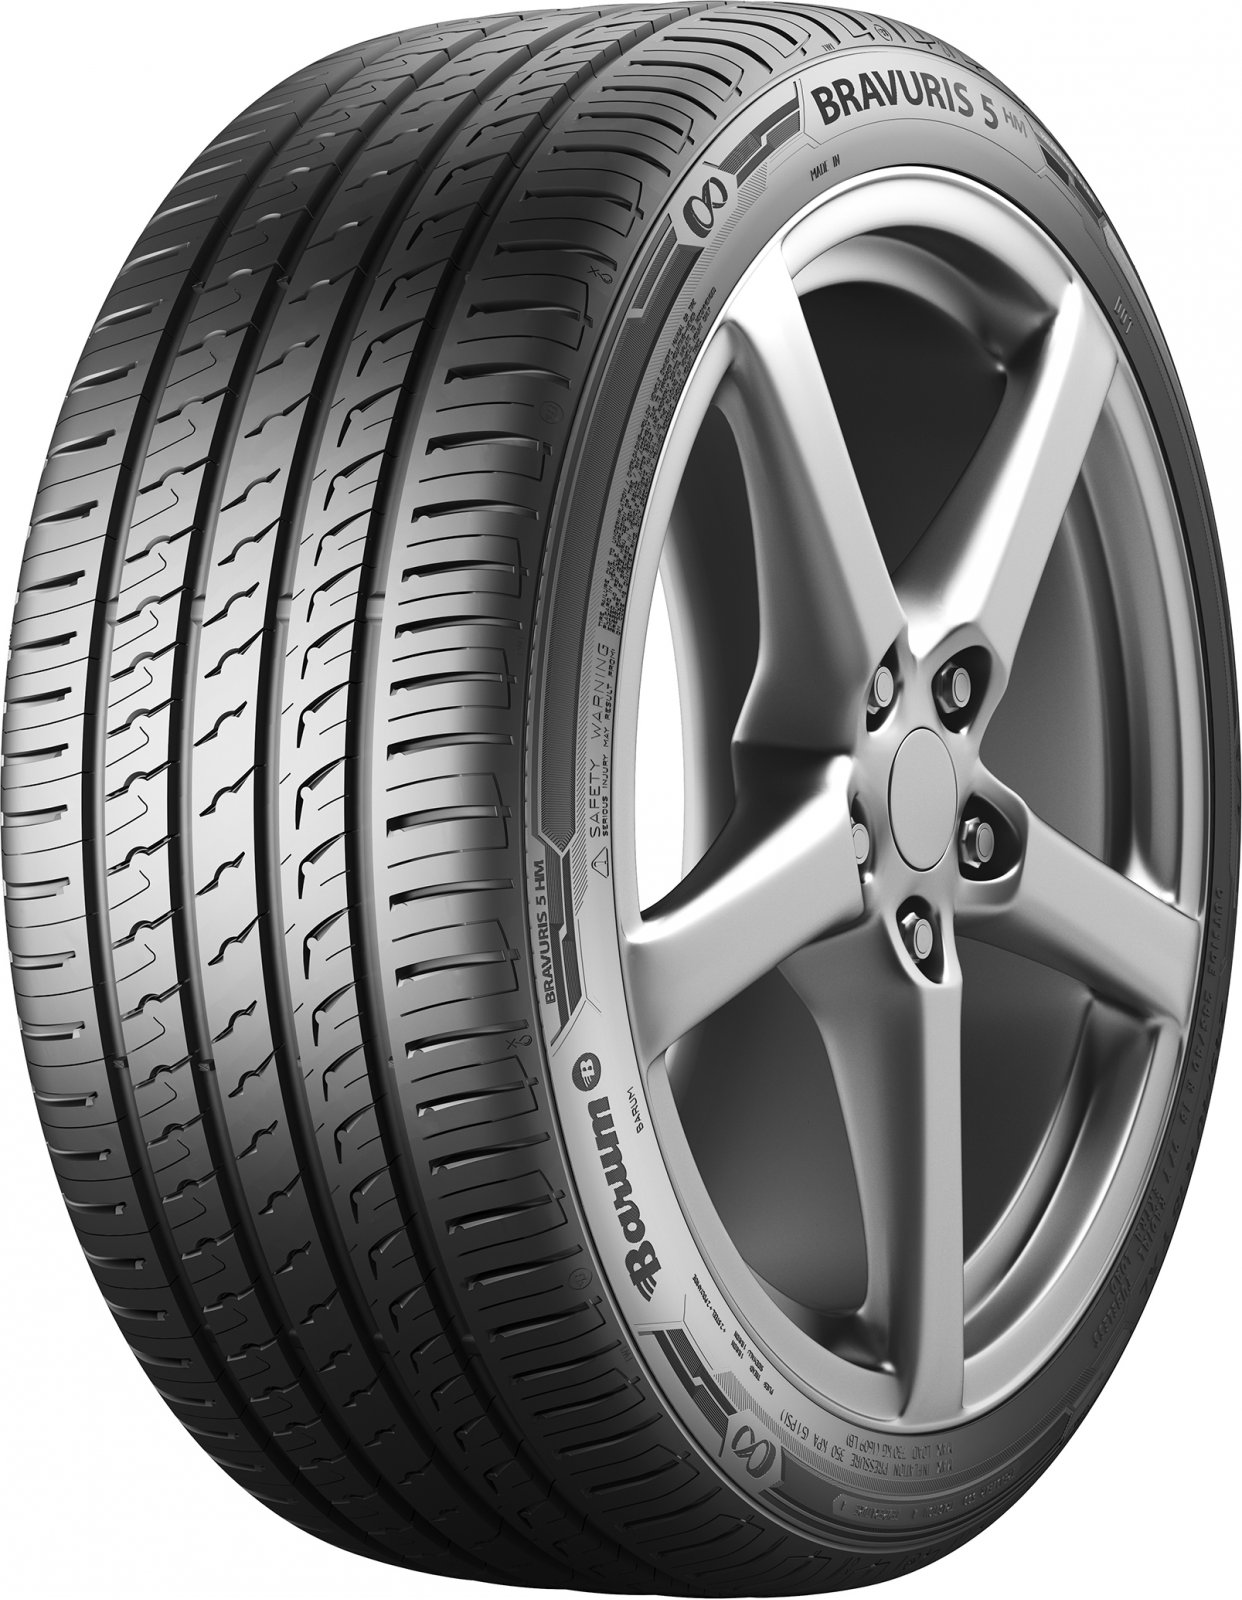 Barum Bravuris 5HM 215/45 R17 91Y XL FR